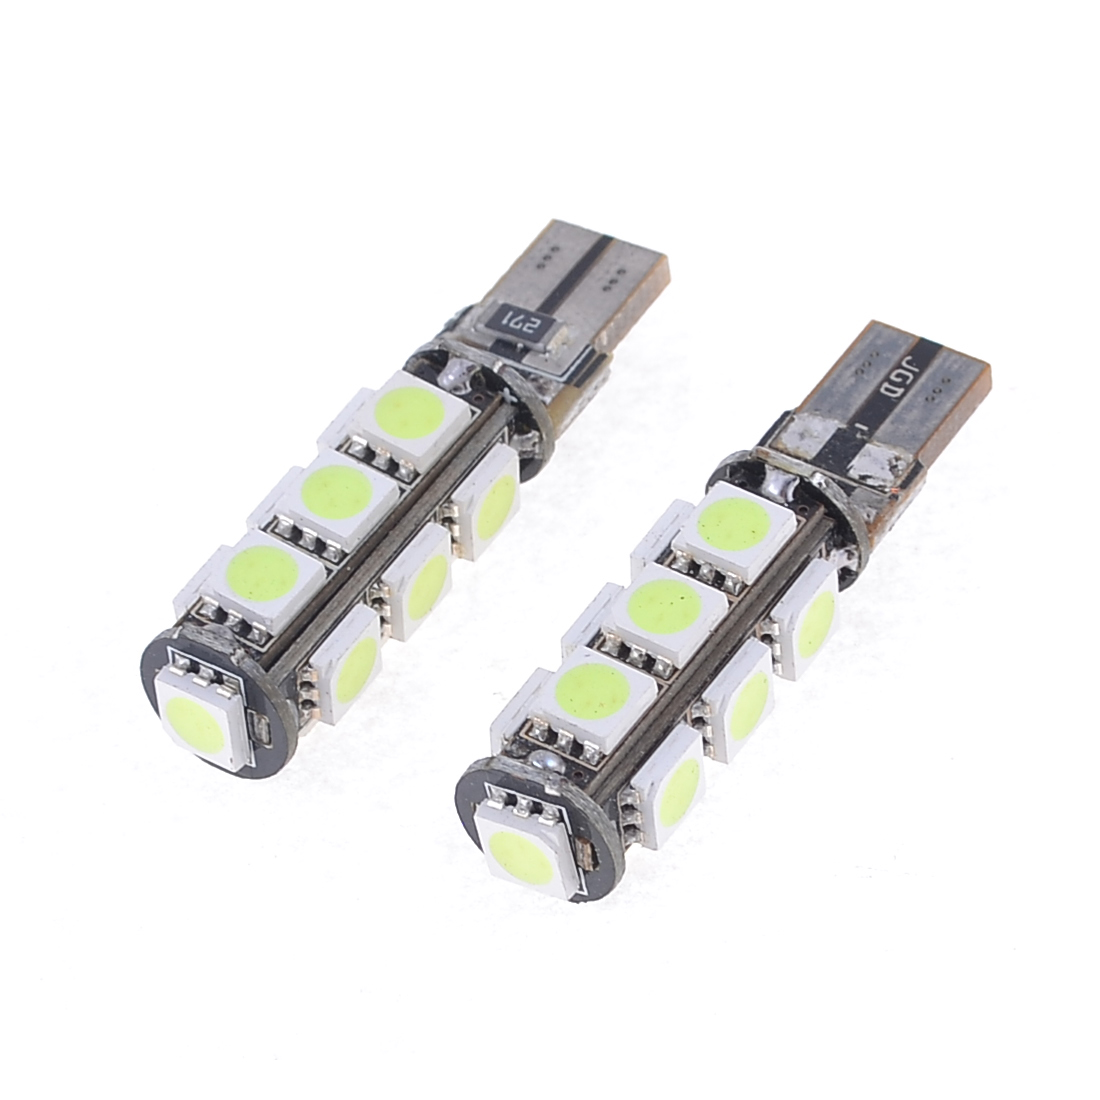 2 Pcs No Error Canbus W5W T10 5050 13-SMD LED Ice Blue Car Light Lamp DC 12V